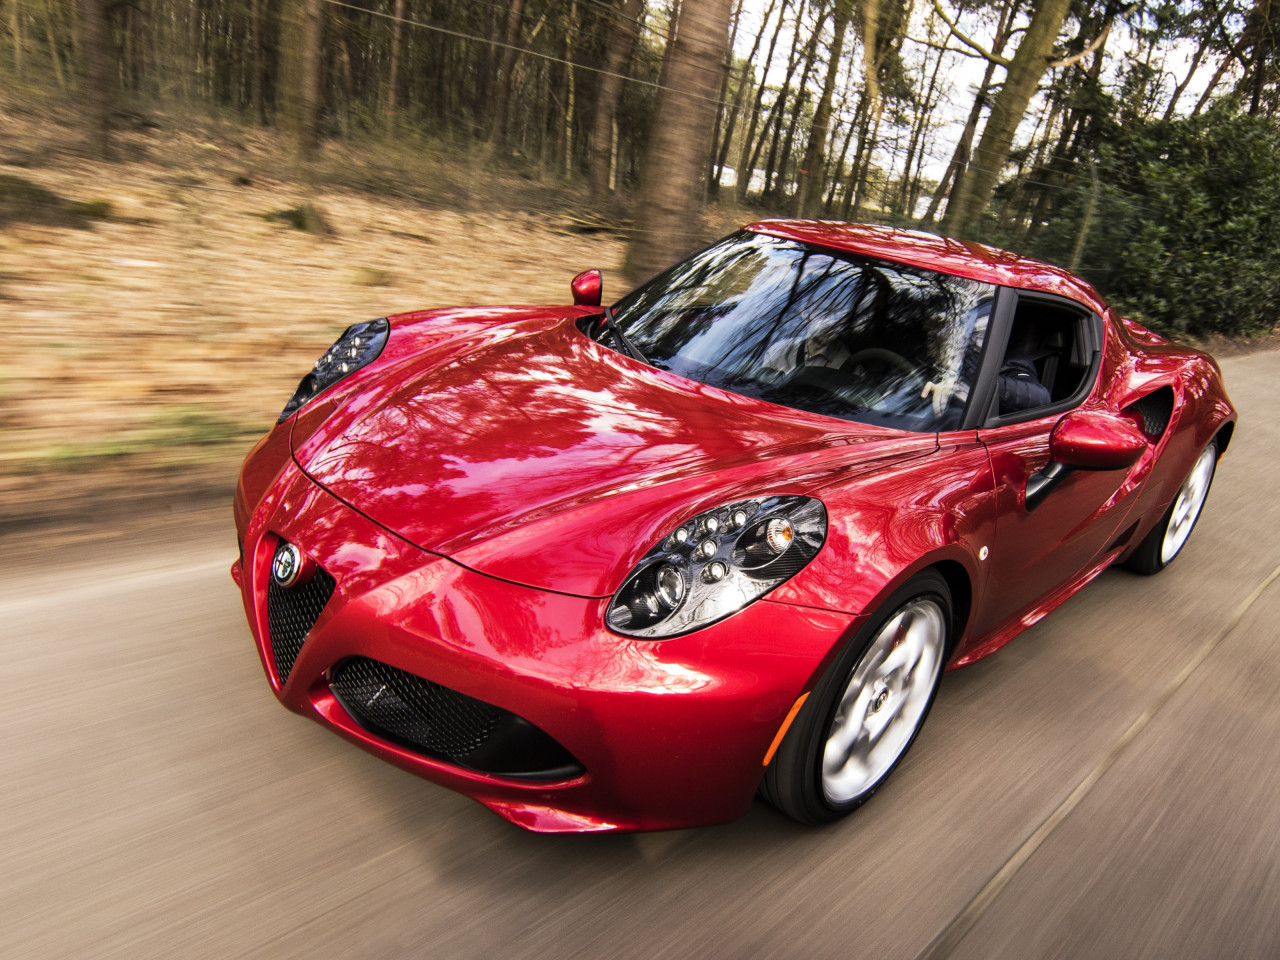 Alfa Romeo 4C Coupe | 1280x960 wallpaper